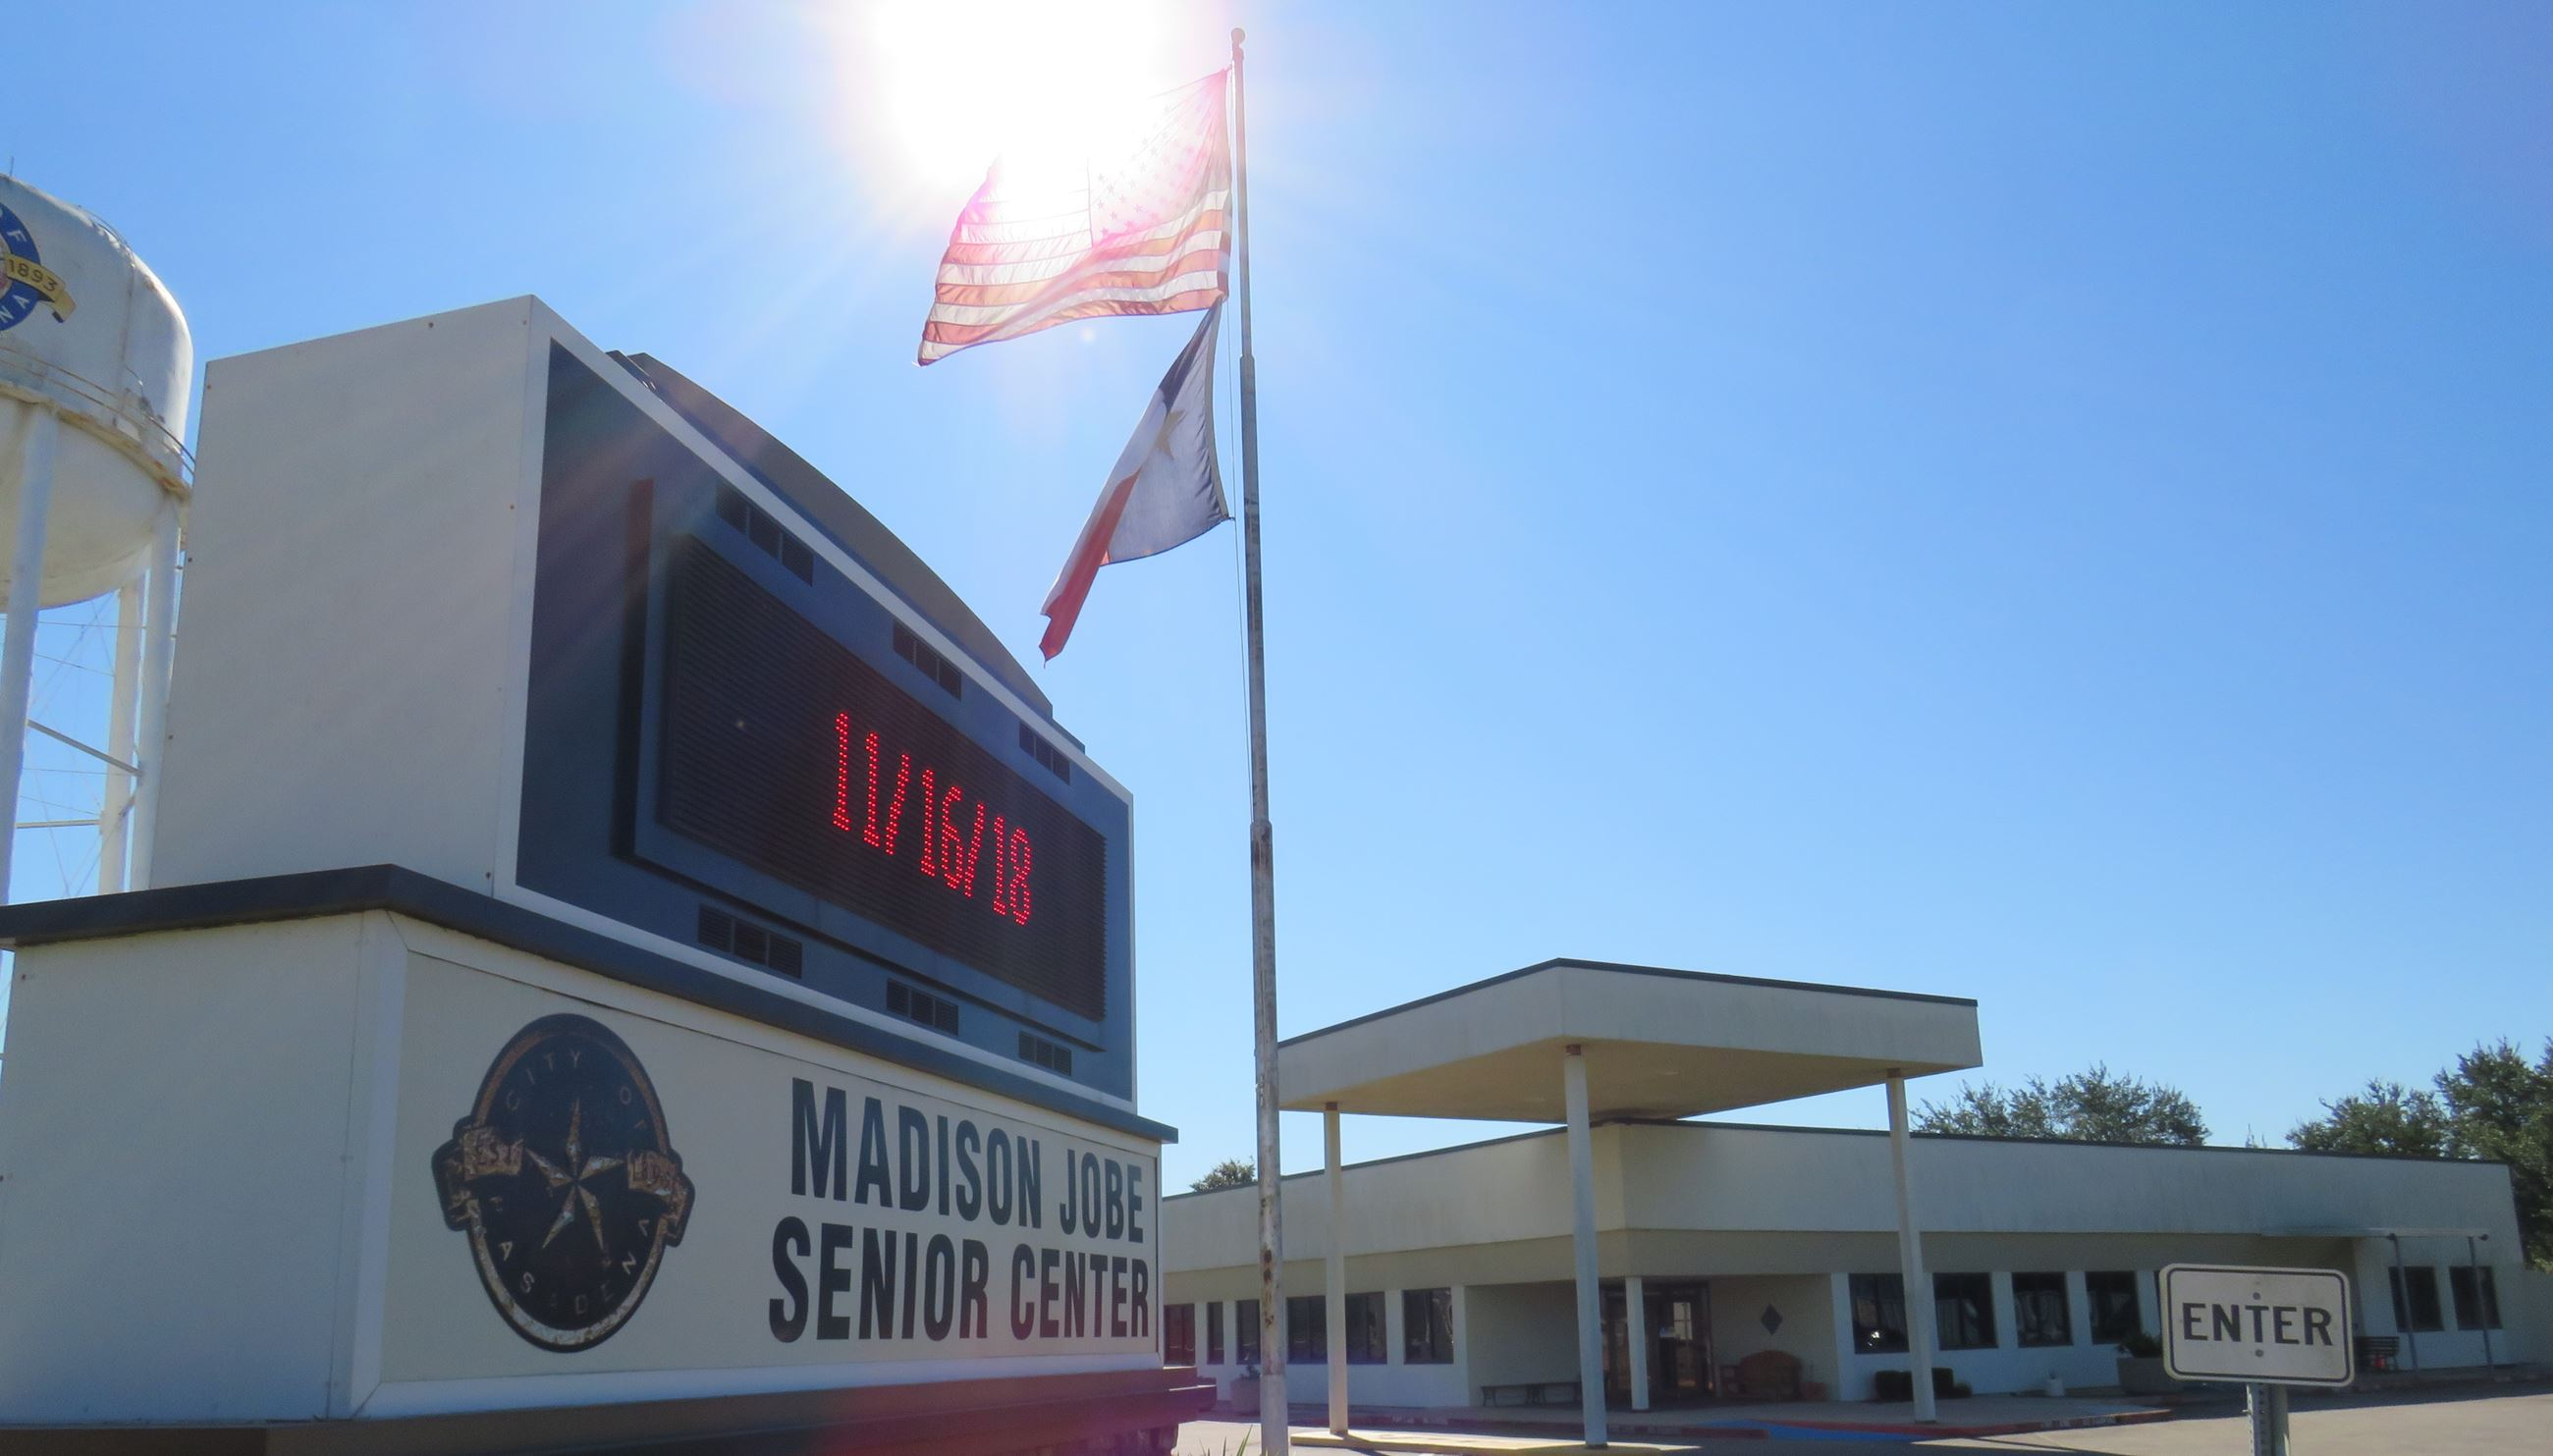 Madison Jobe Senior Center